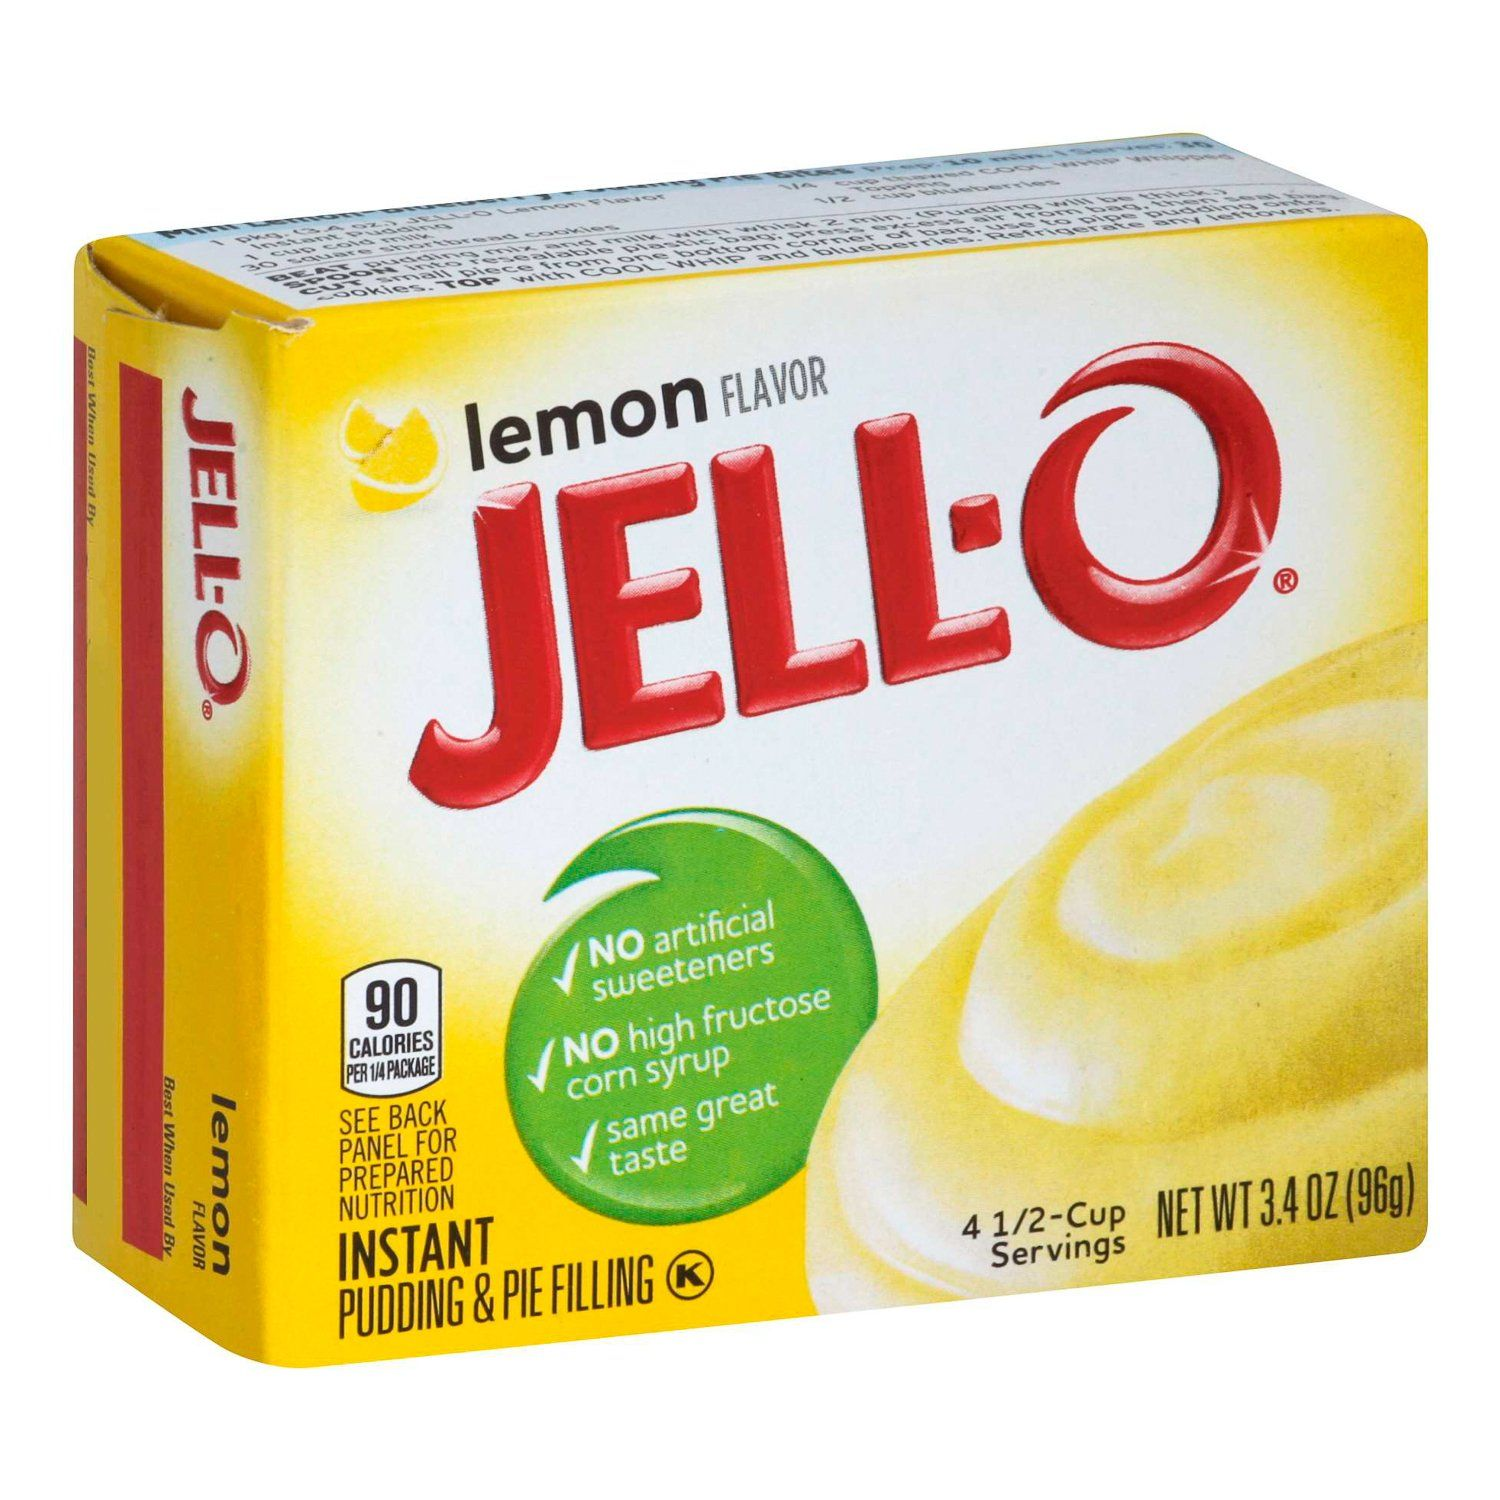 Jell-O Instant Pudding & Pie Filling Mixes Jell-O Lemon 3.4 Ounce